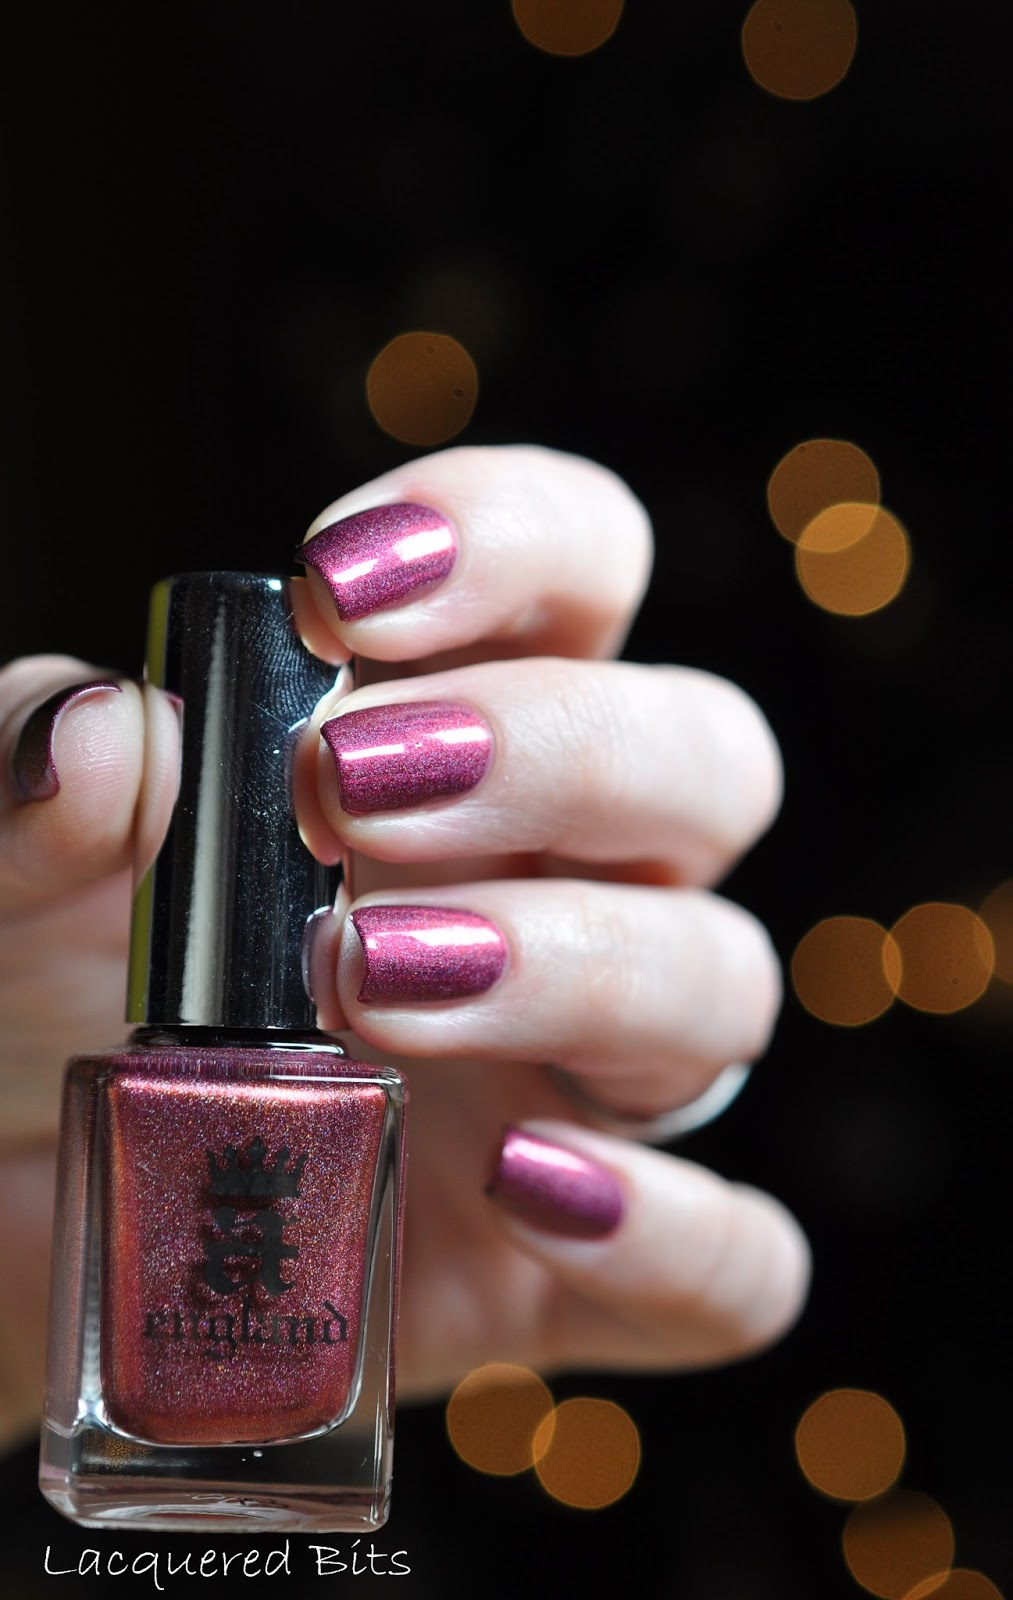 a england – Briar Rose/Sleeping Beauty – Swatches & Review